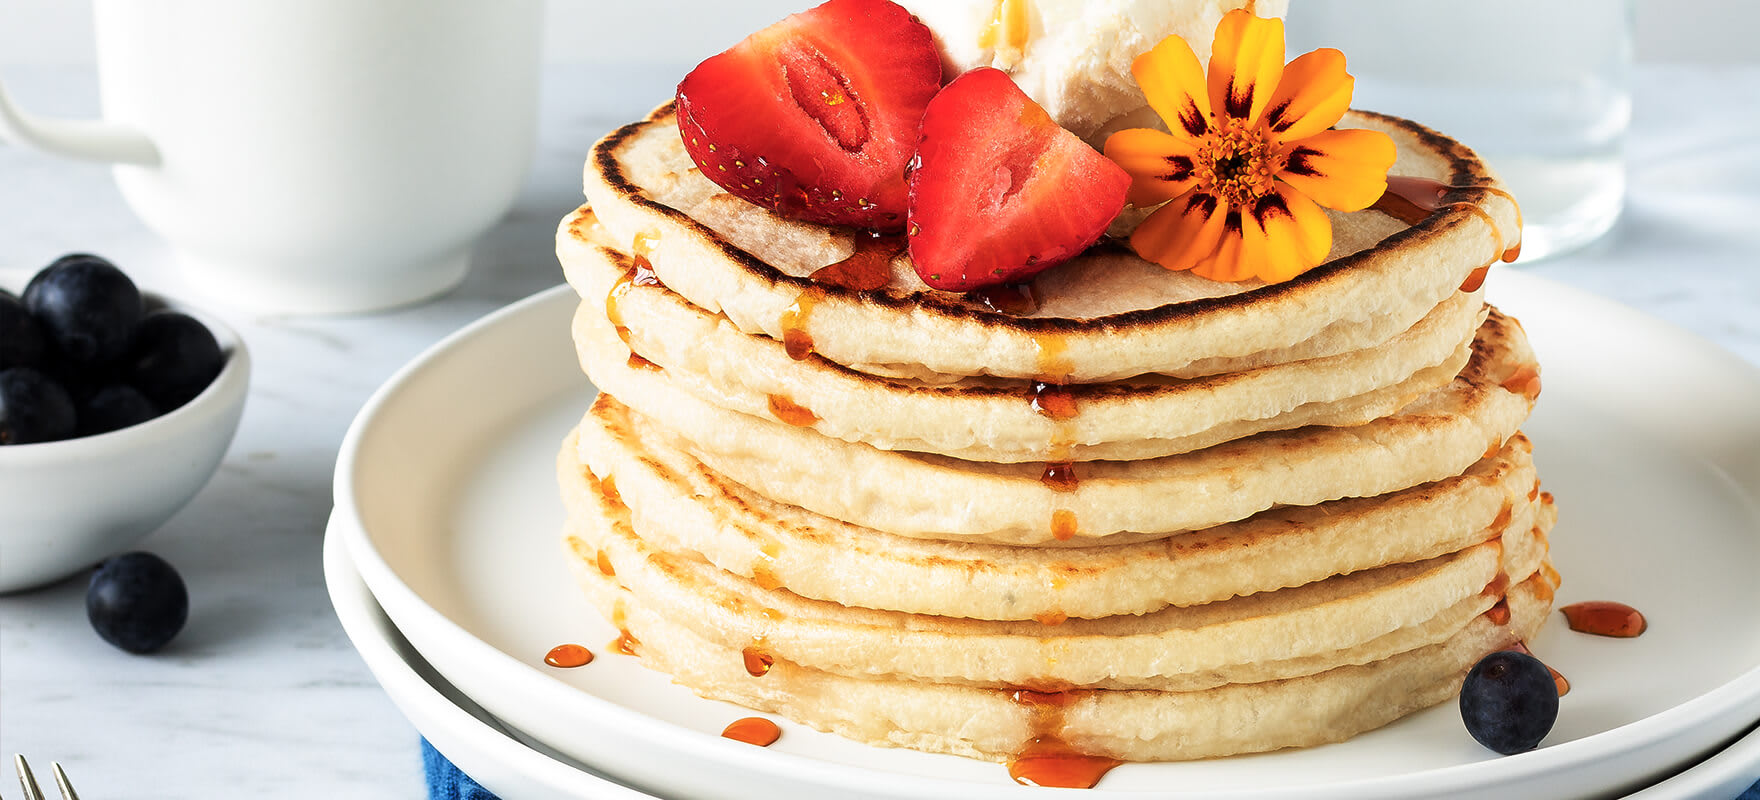 So Good Gluten free pancakes image 1